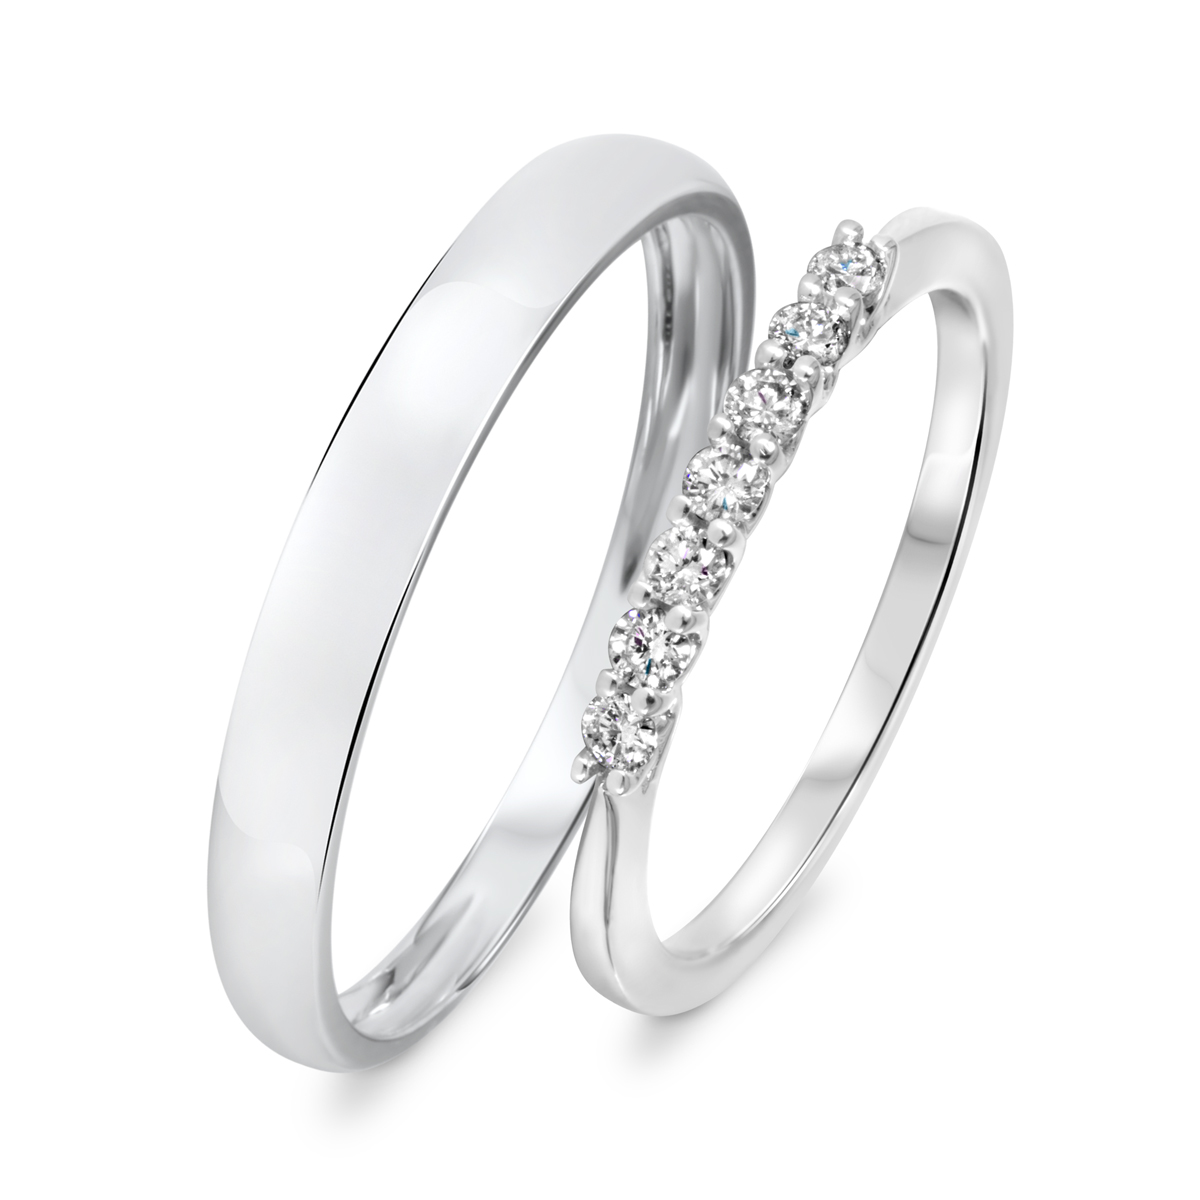 1/5 Carat T.W. Round Cut Diamond His And Hers Wedding Band Set 14K White Gold-